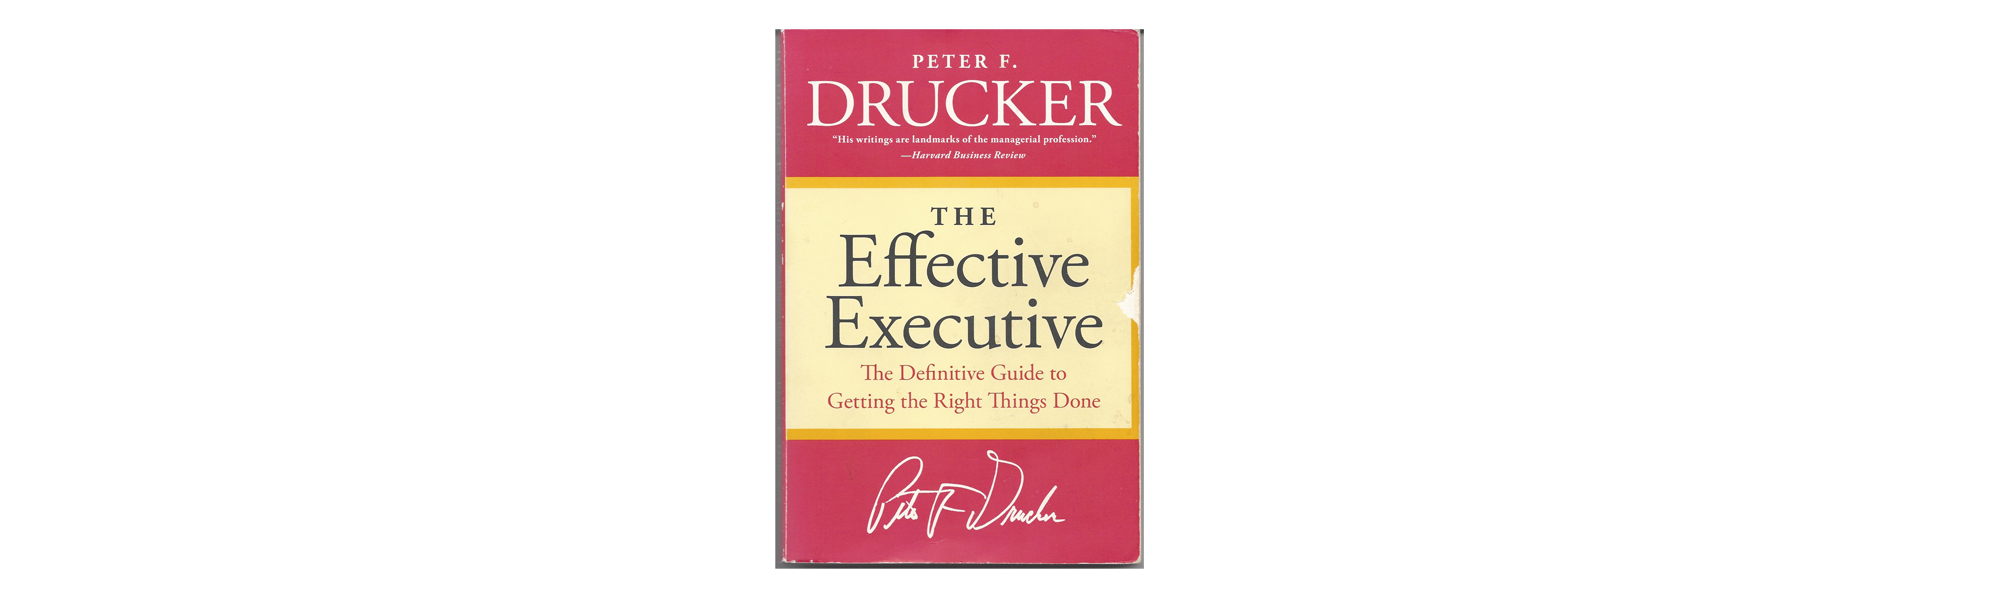 theory of business peterdrucker article review Marketing is management: the wisdom of peter drucker  than 50 articles in the harvard business review and over 40 books, we can see that his  theory of the.